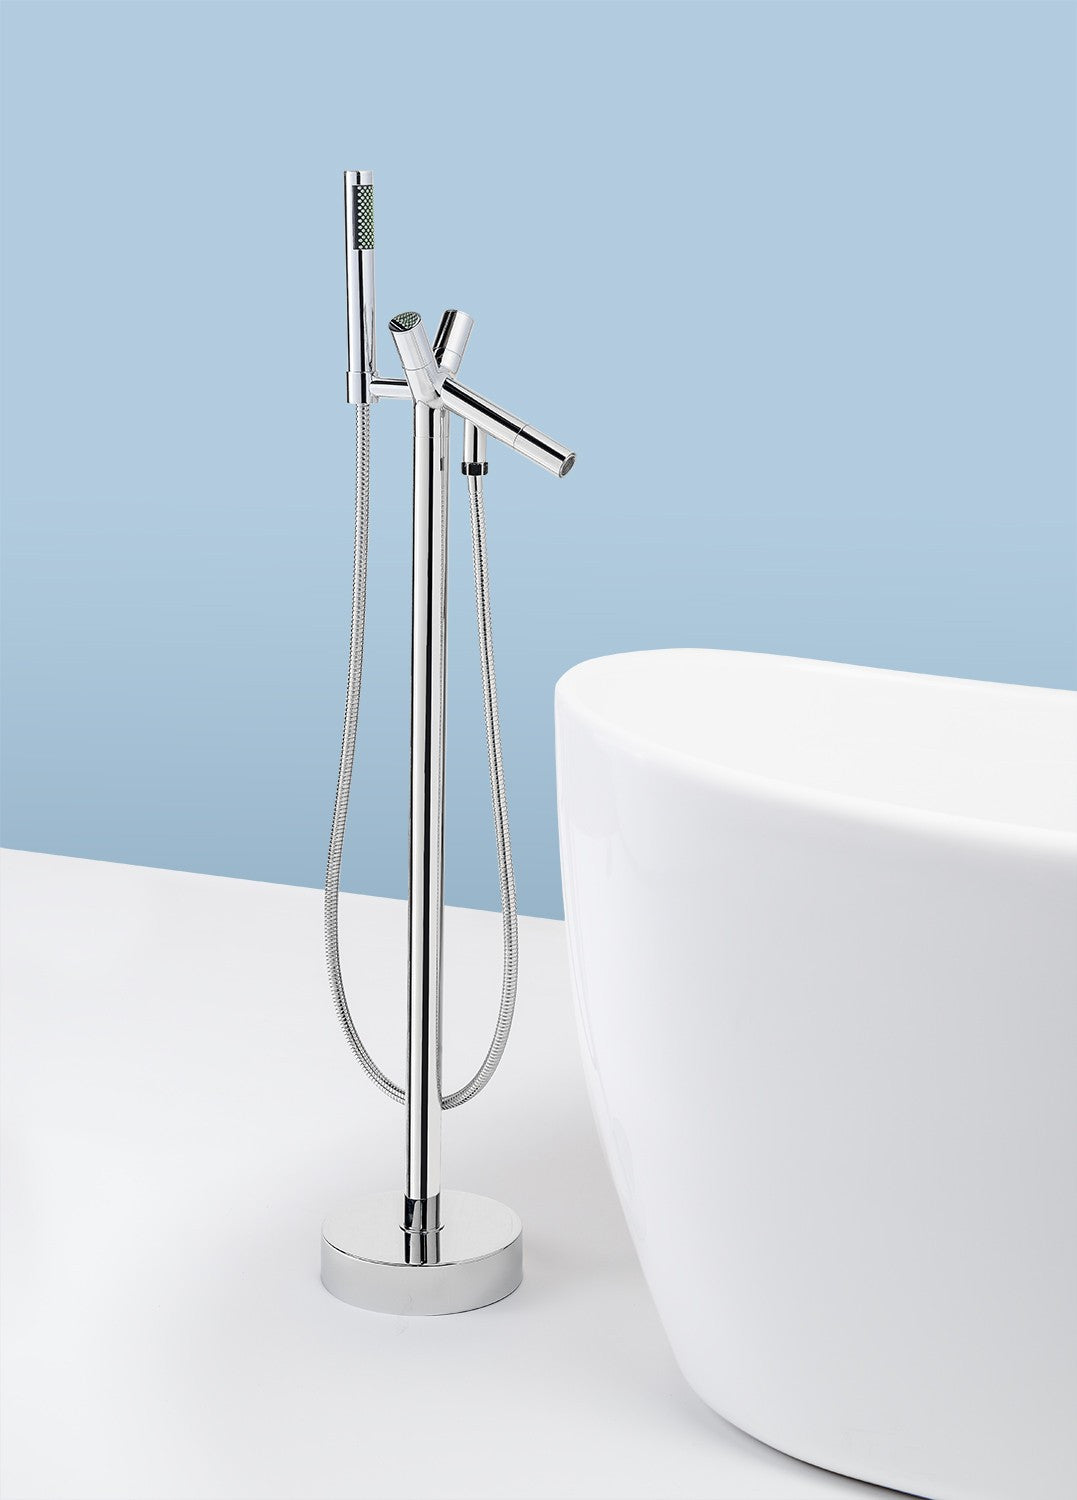 AKDY Freestanding Tub Filler Faucet | ATF8711 – RainShowersDirect.com